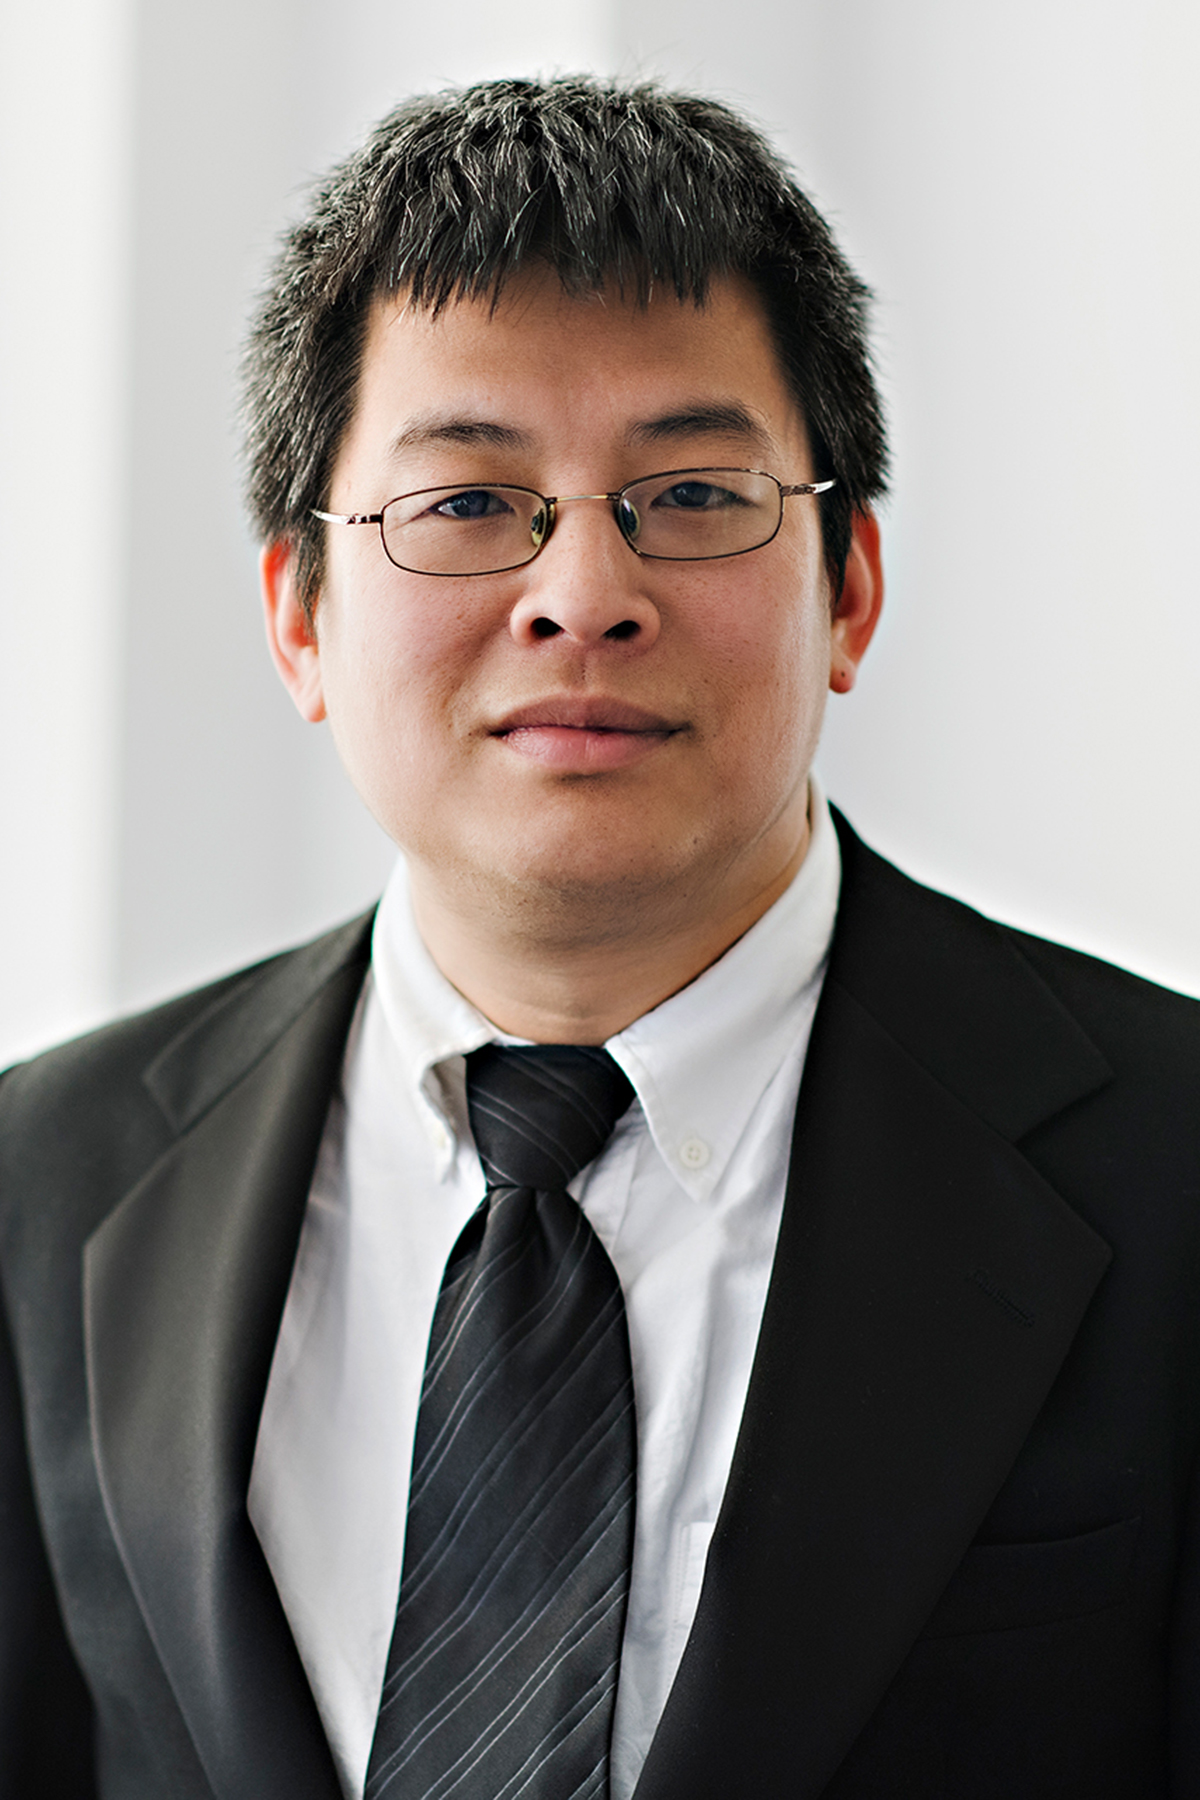 Professor David Jao